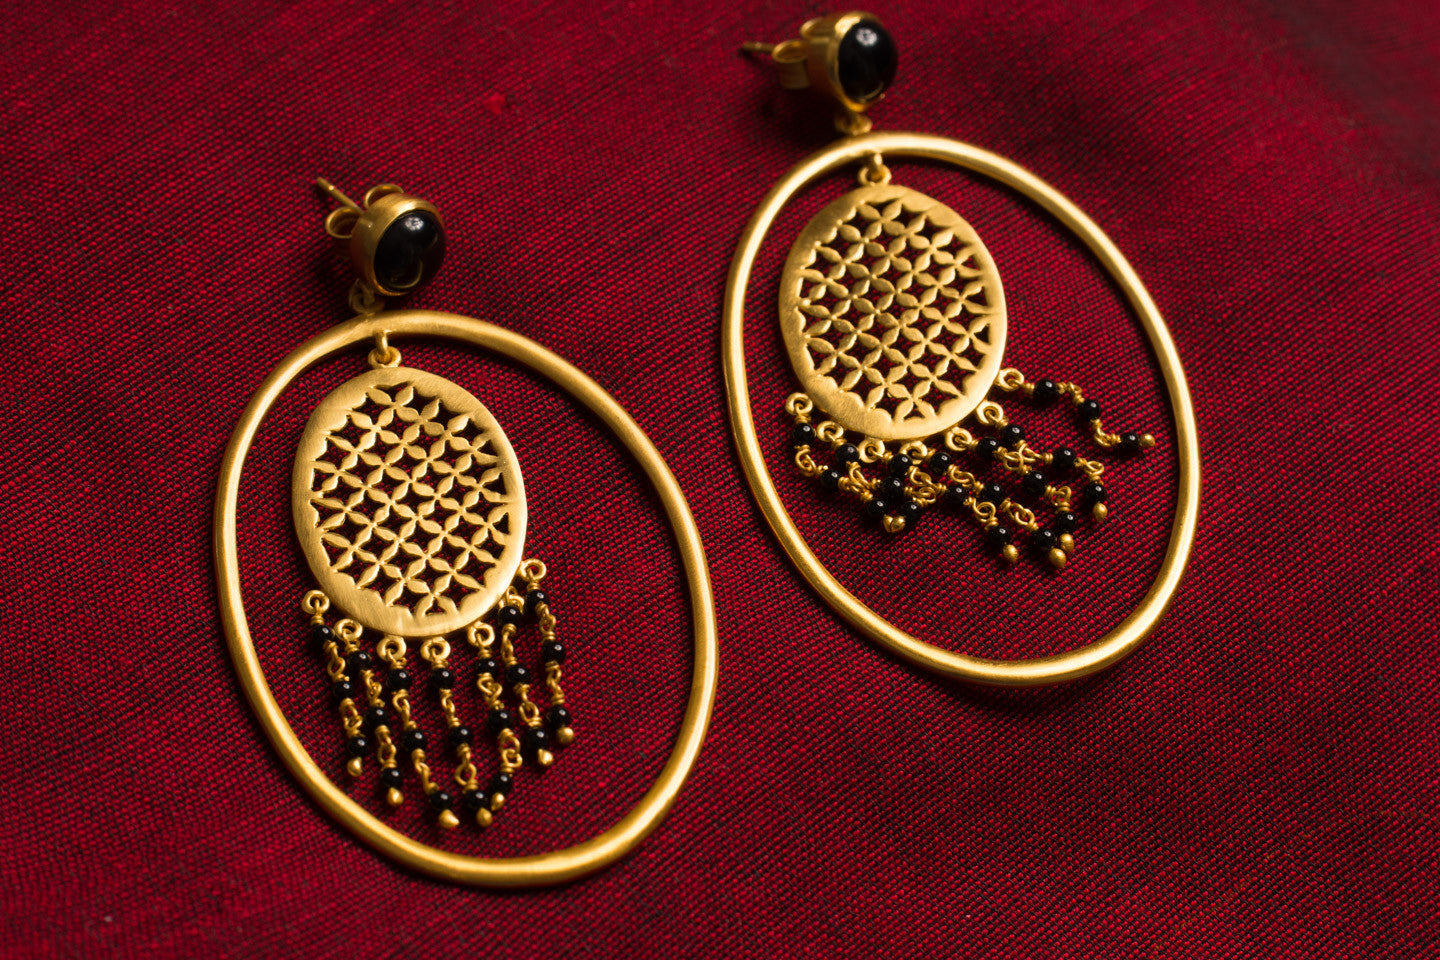 20a467-silver-gold-plated-amrapali-earrings-oval-cut-work-black-onyx-alternate-view